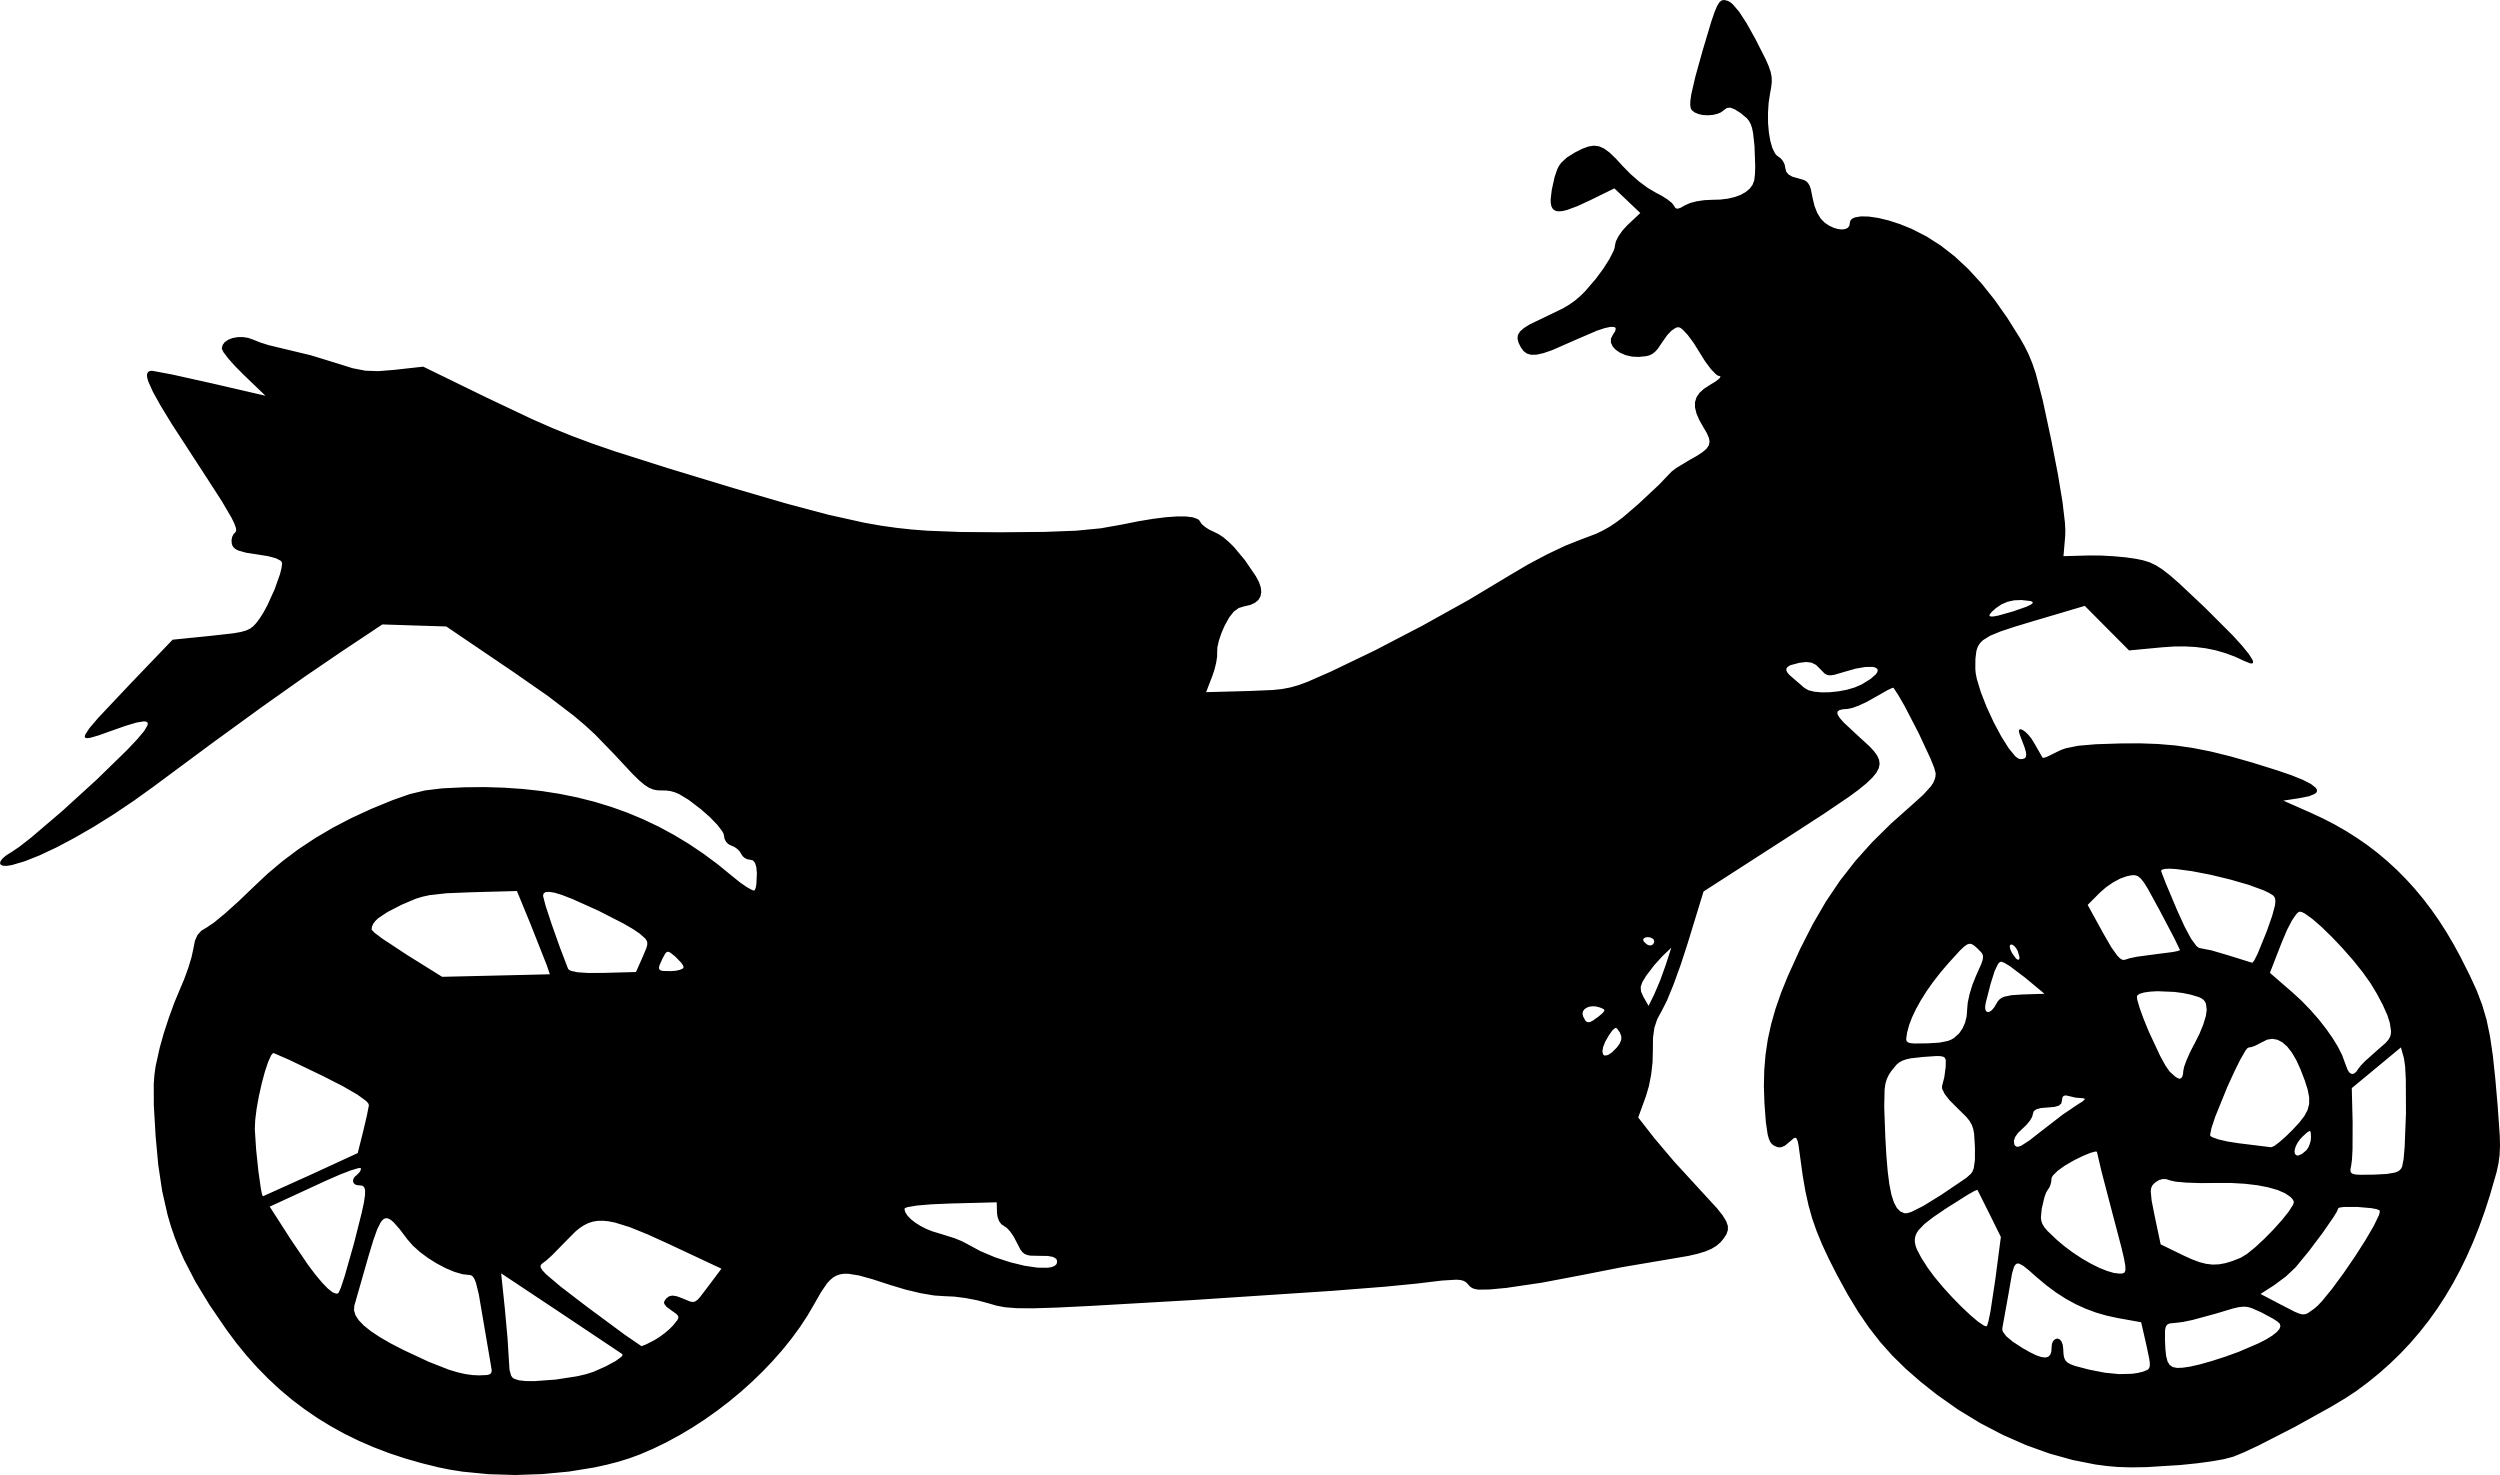 Motorcycle Silhouette Images